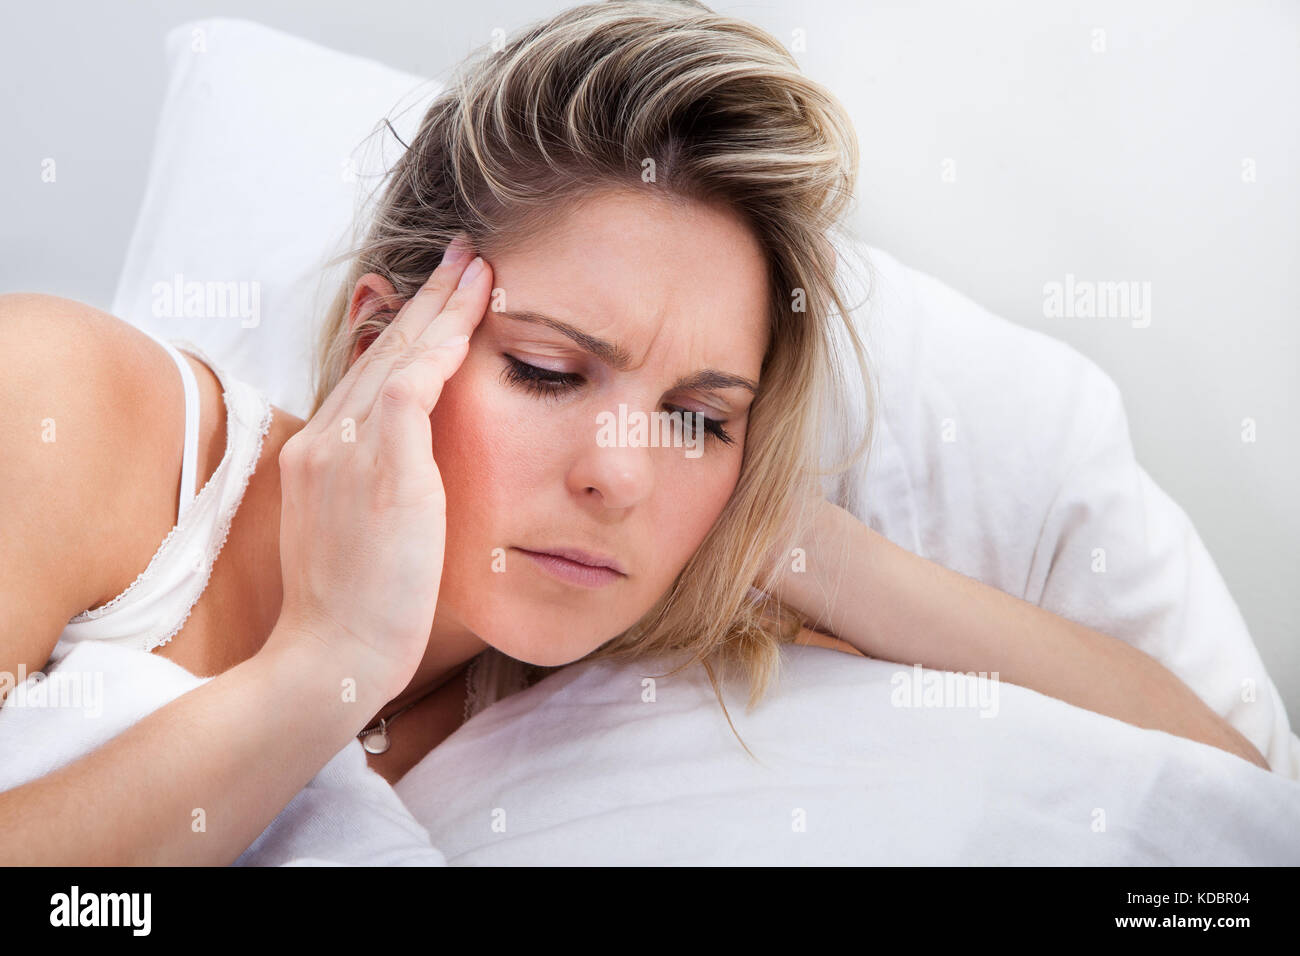 Portrait of woman with headache lying on bed - Stock Image